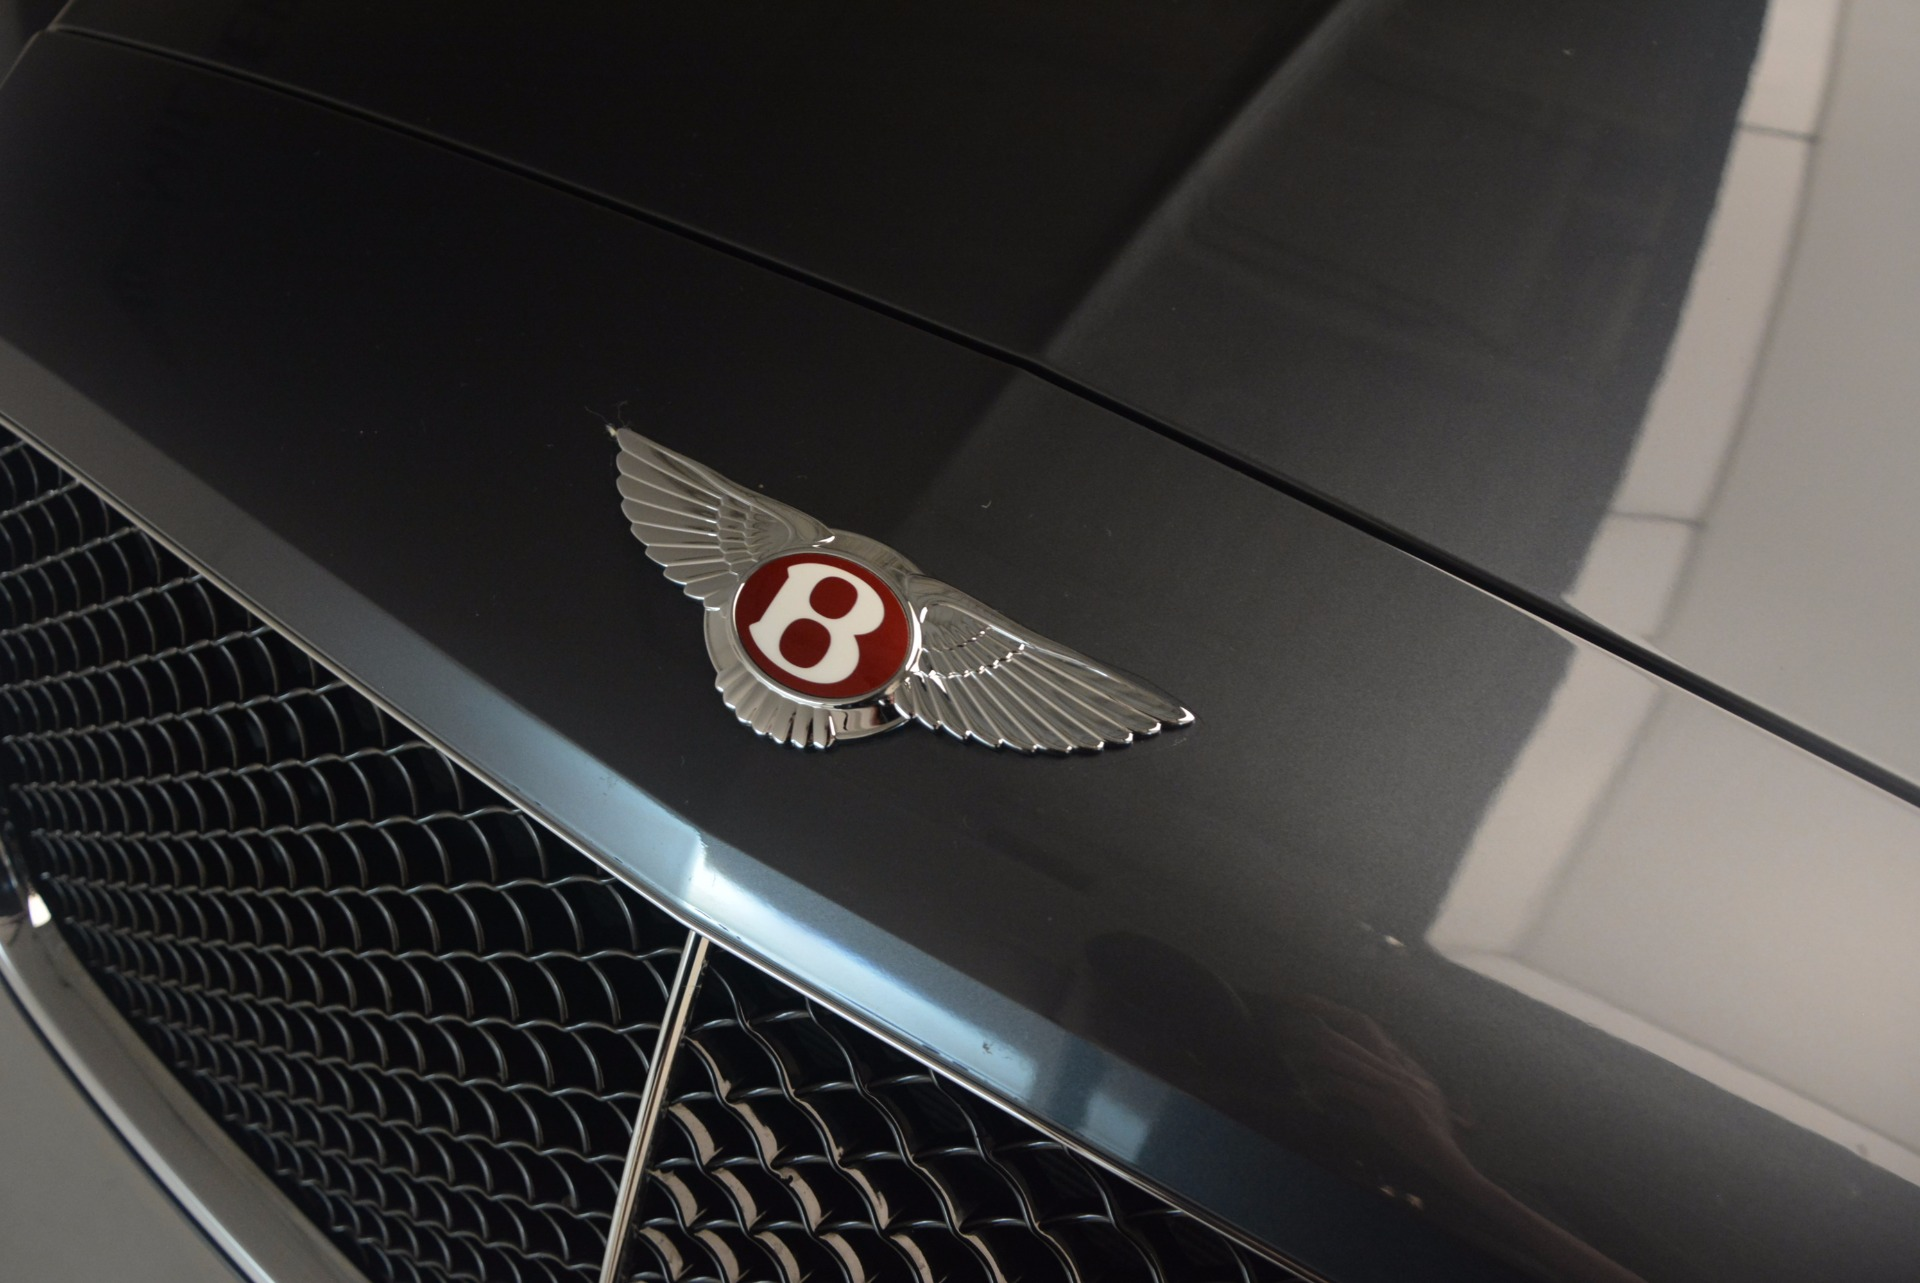 Used 2013 Bentley Continental GT V8 Le Mans Edition, 1 of 48 For Sale In Greenwich, CT 1288_p29